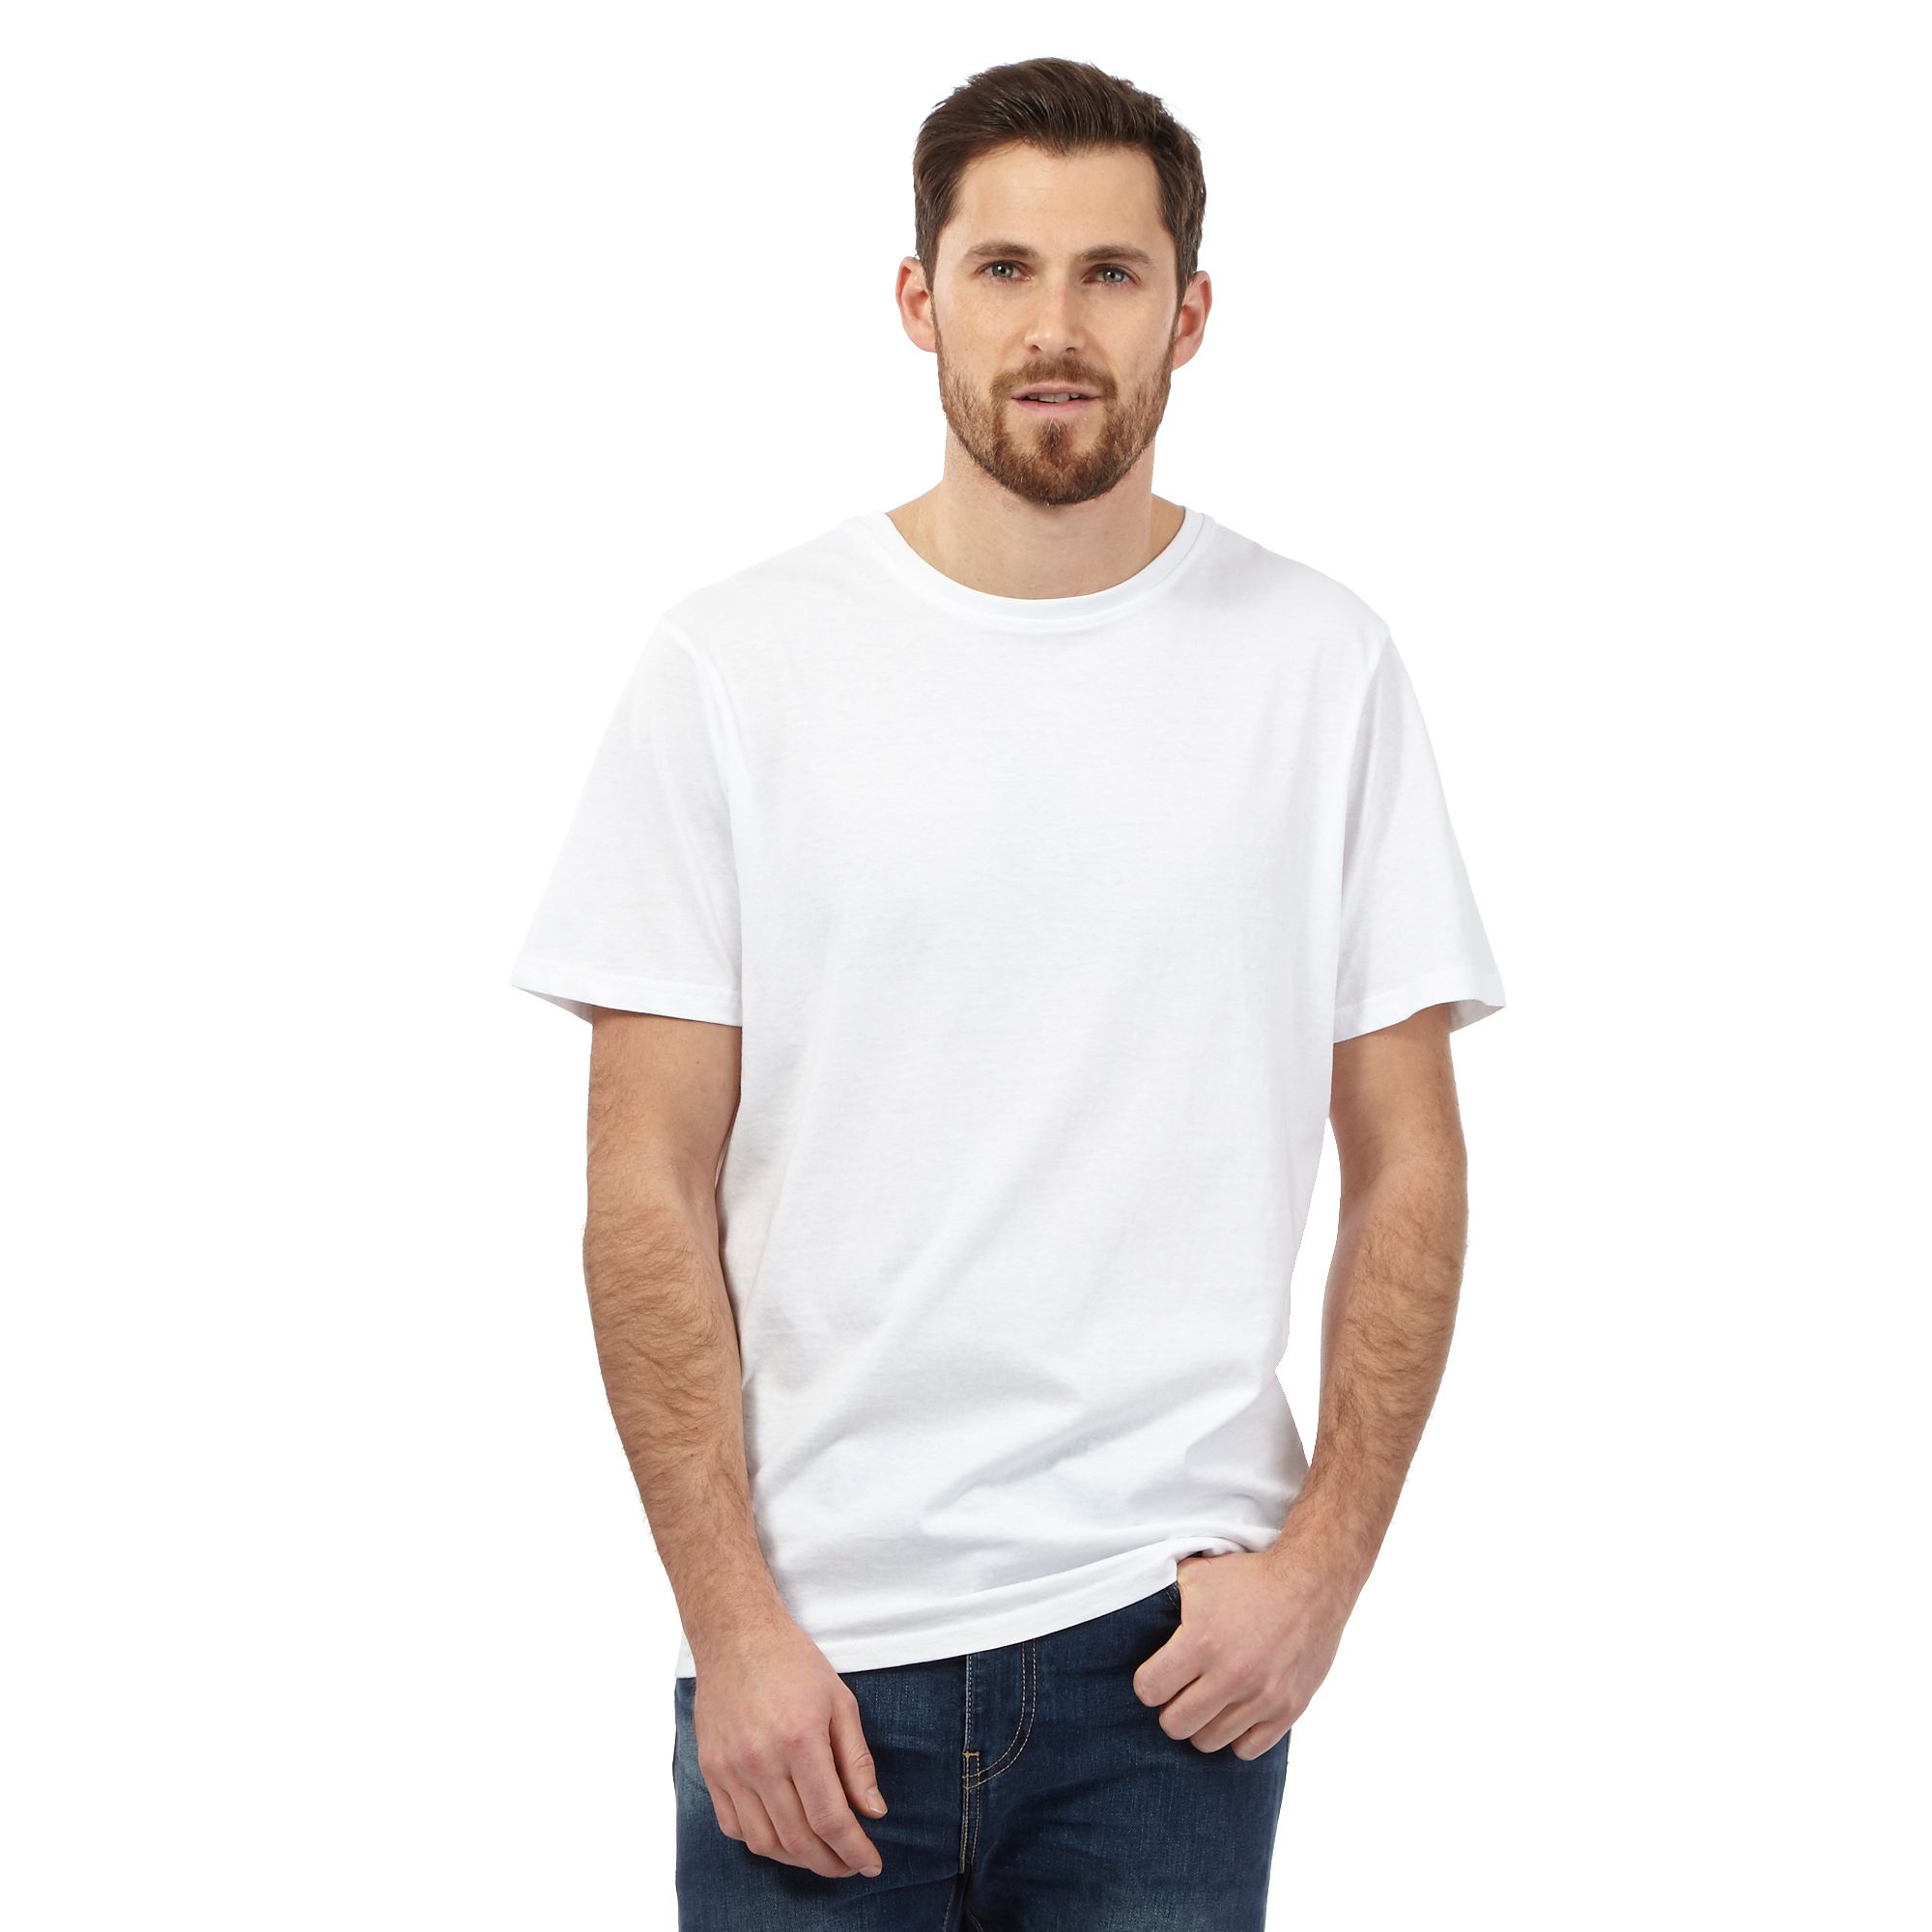 A white T-shirts is one of the most versatile pieces of clothing a guy can own. Whether as an base layer or on its own, it works in every year and for every style.